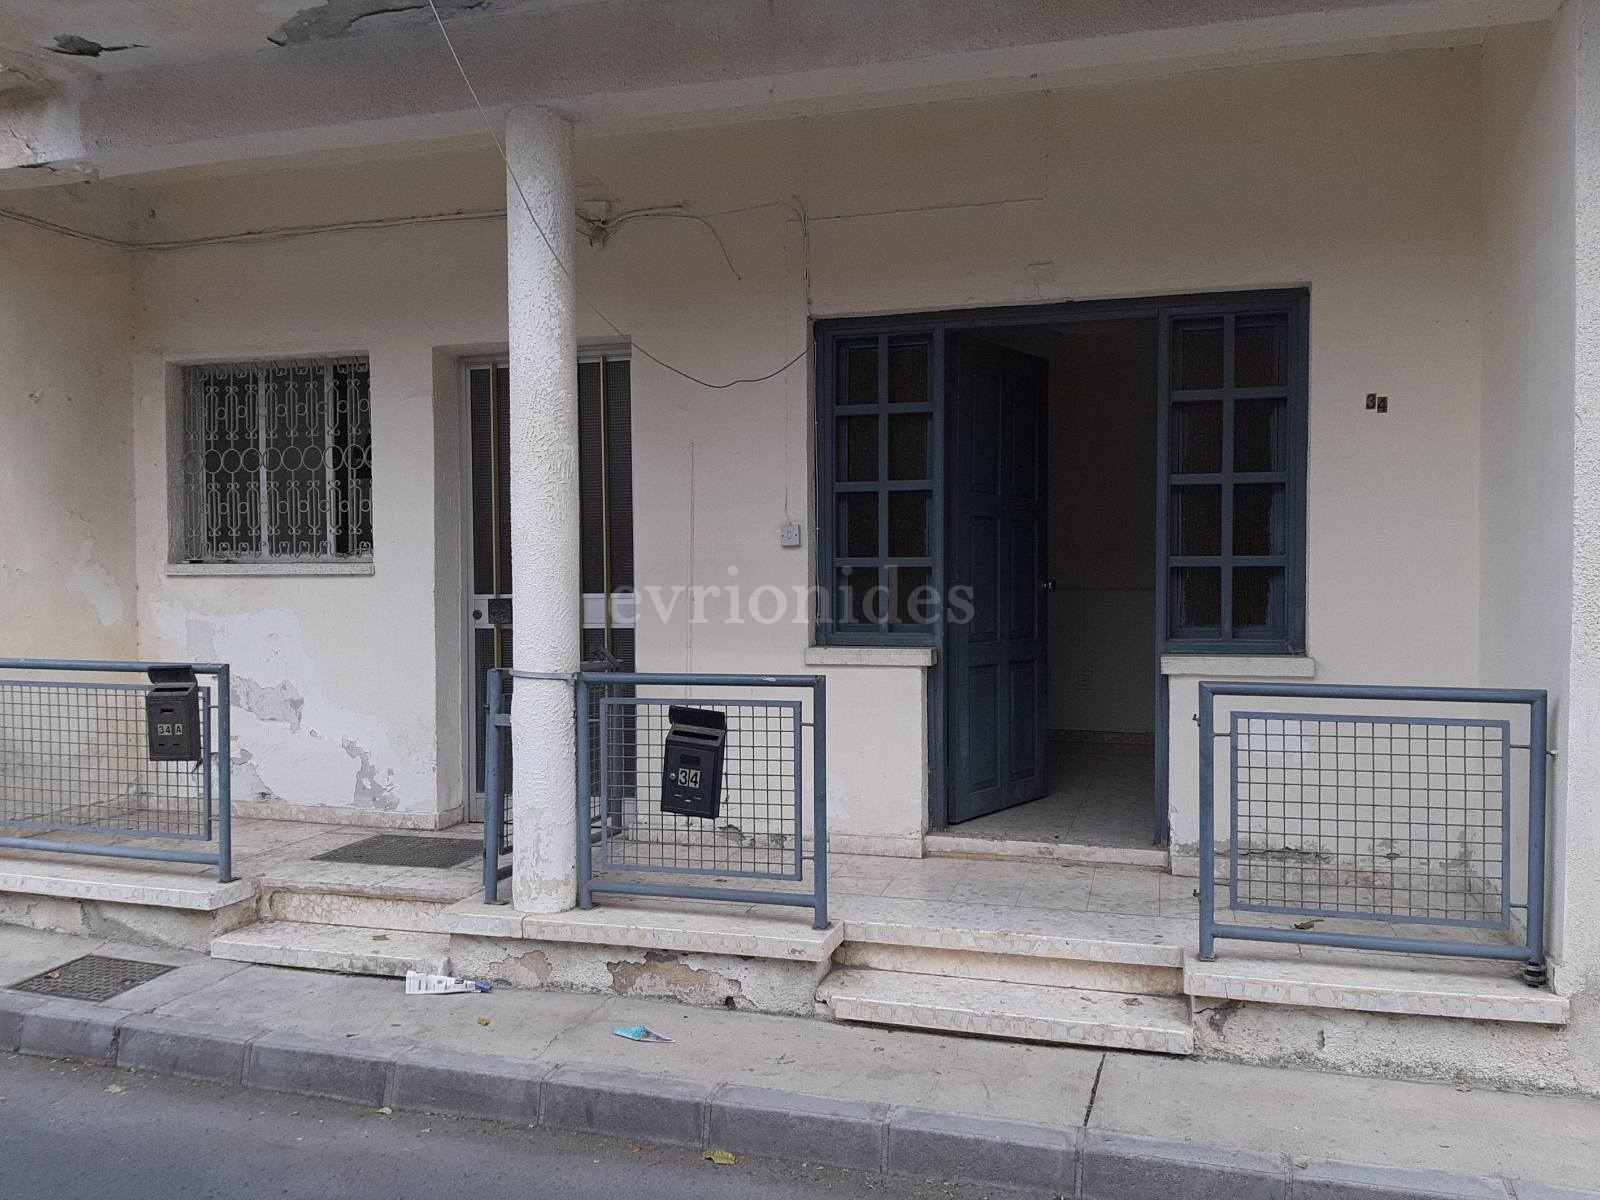 2 Houses in old town 80 meters from sea side